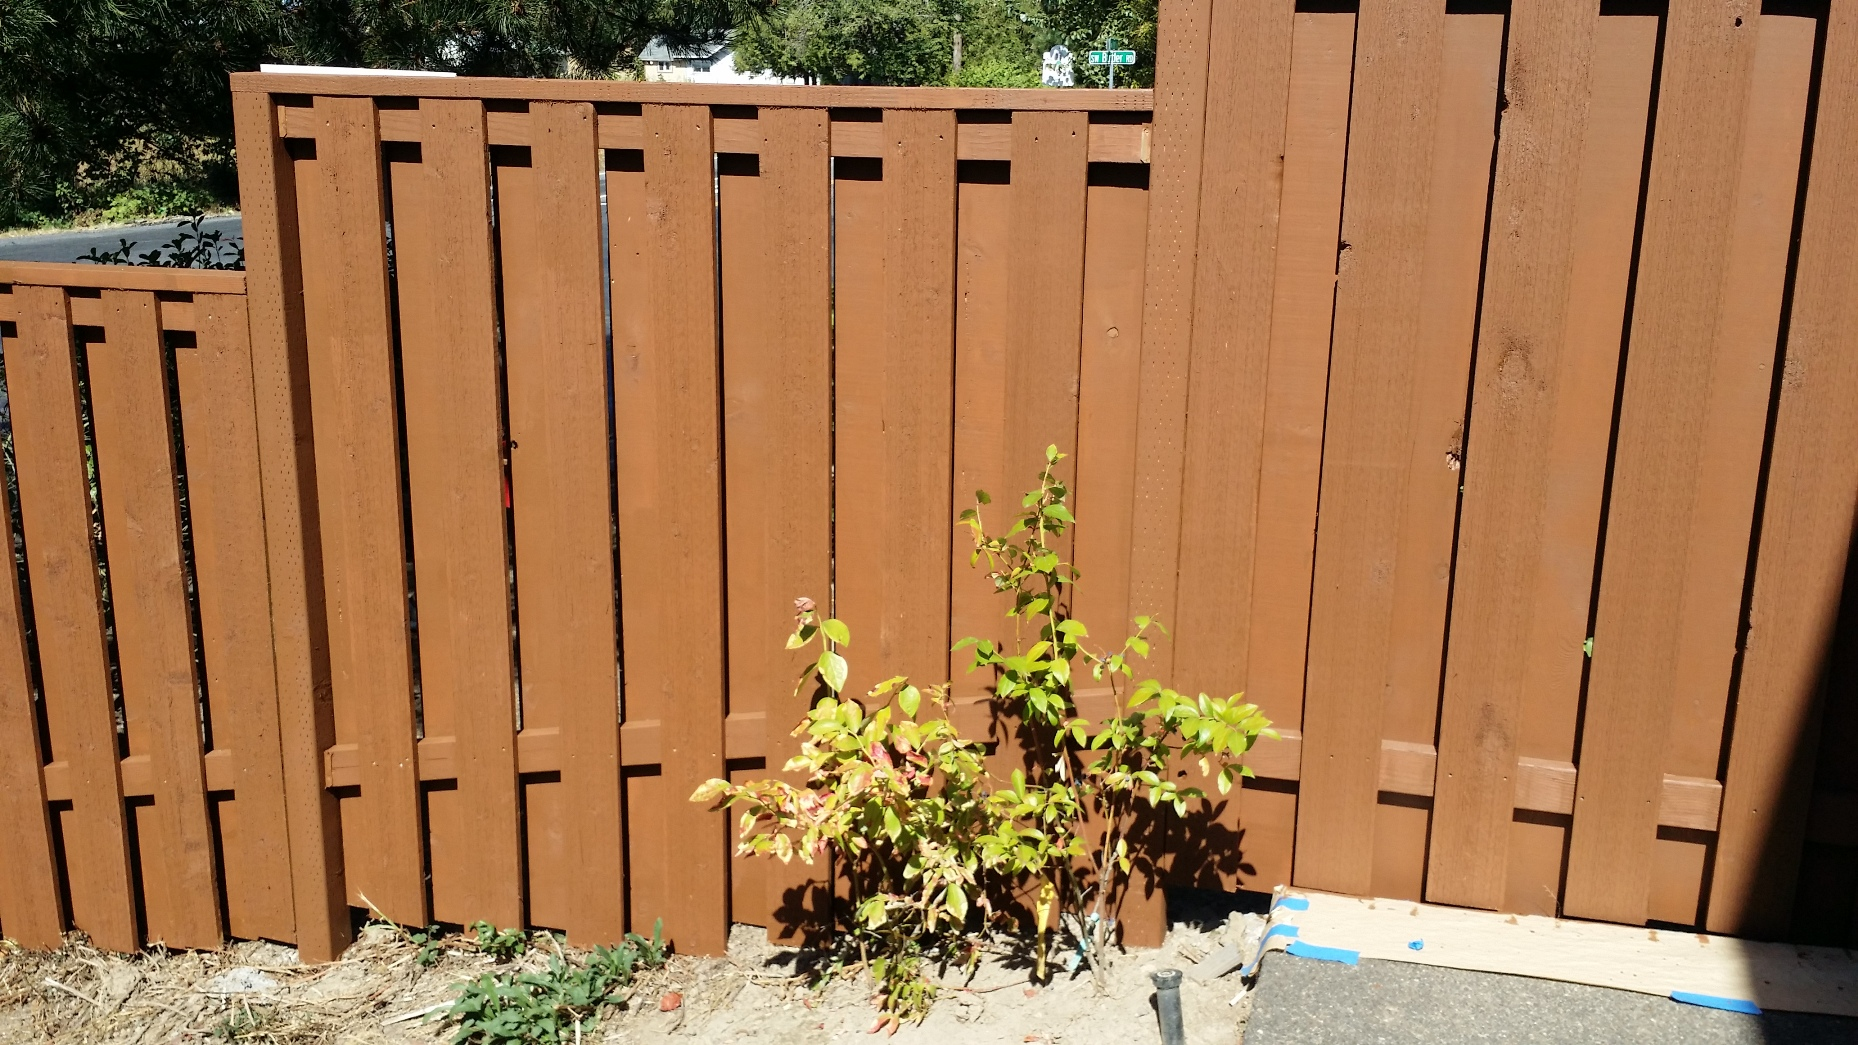 Milwaukee fence repair quote, Milwaukee fence contractor, Milwaukee fencing company, Fence Repair Milwaukee, Milwaukee fencing repair